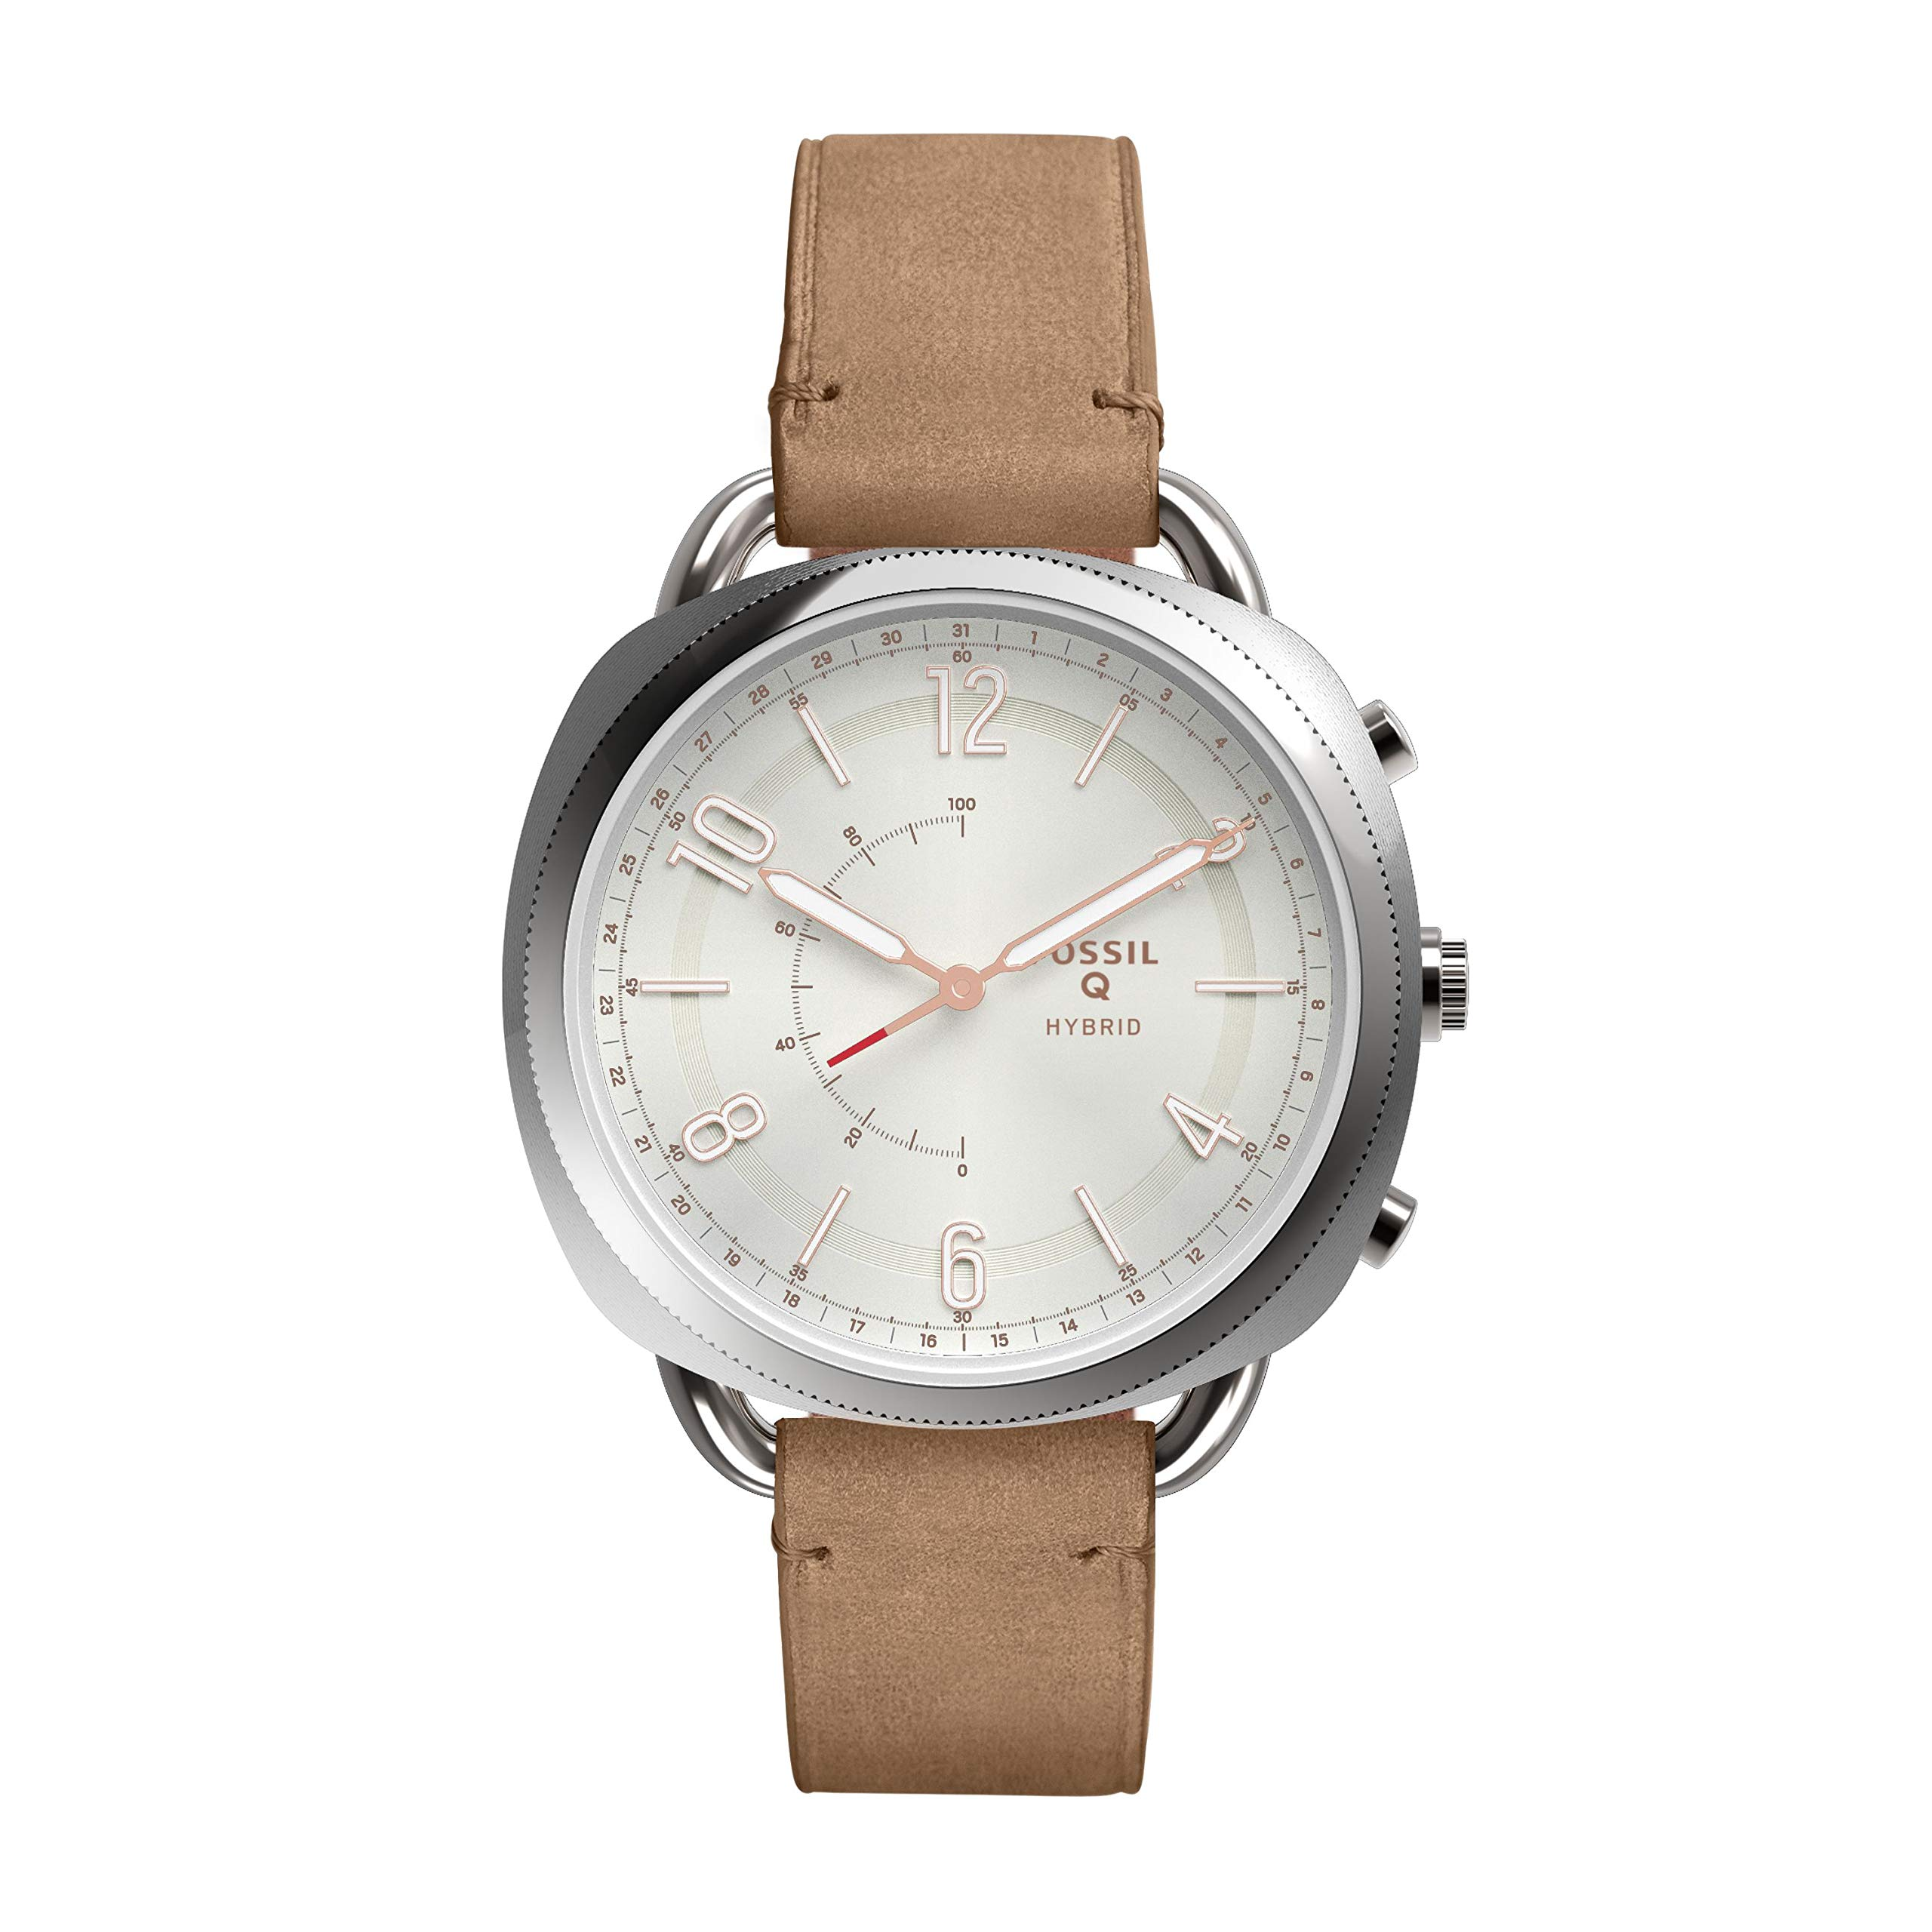 Fossil Women's Accomplice Stainless Steel and Leather Hybrid Smartwatch, Color: Silver, Brown (Model: FTW1200) by Fossil